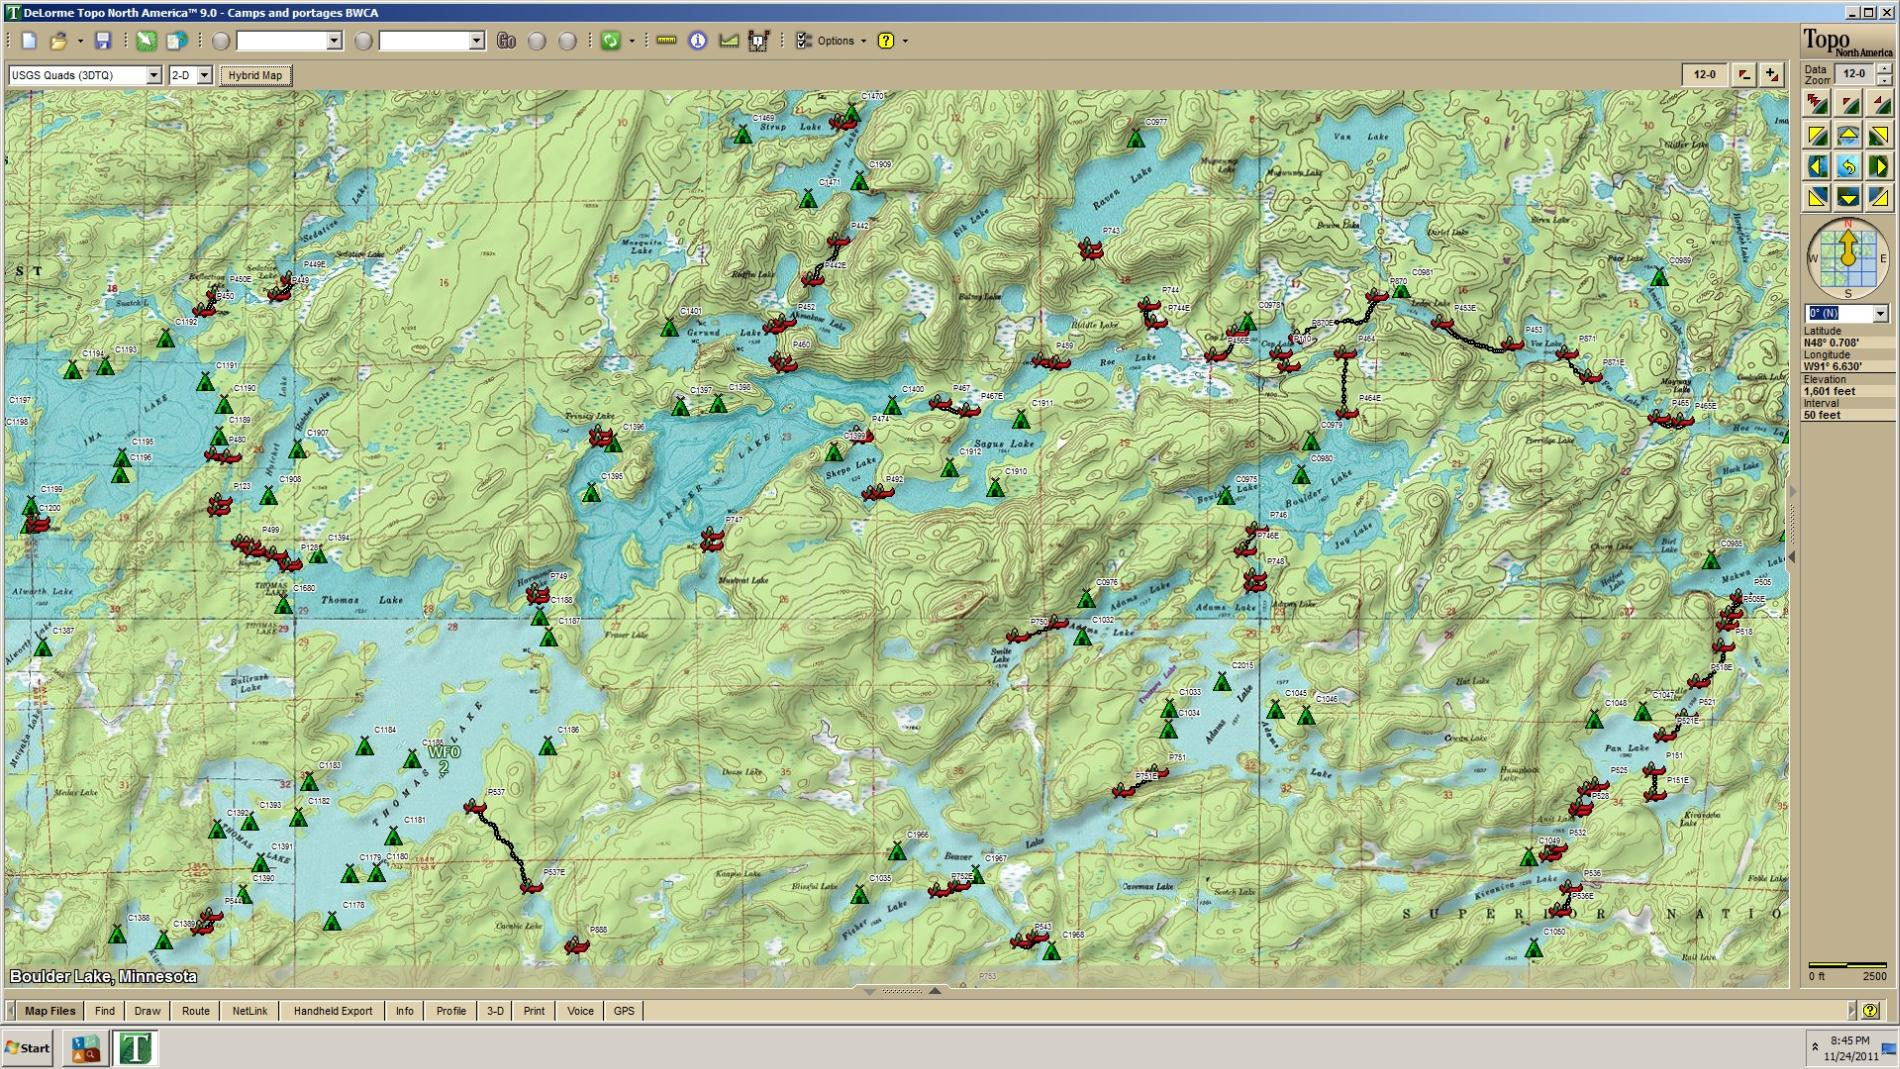 map of bwca with Bwca Maps on Bwca Maps likewise Map21 further Boundary Waters Fishing likewise Articlesmedia as well Index.